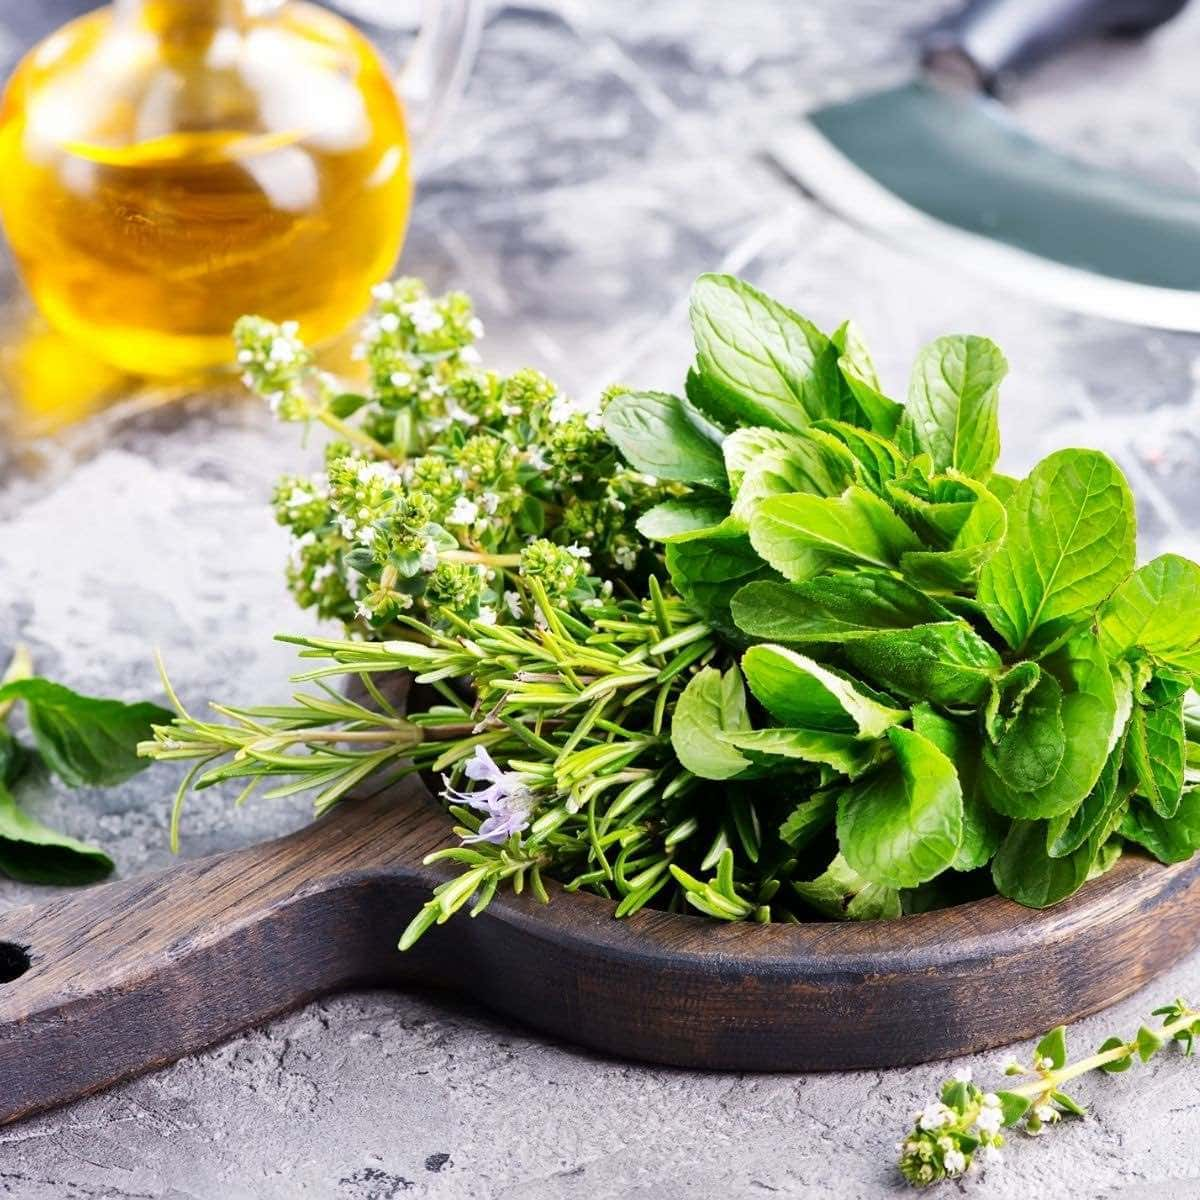 Round wooden cutting board with a variety of fresh herbs and a bottle of oil in the background.